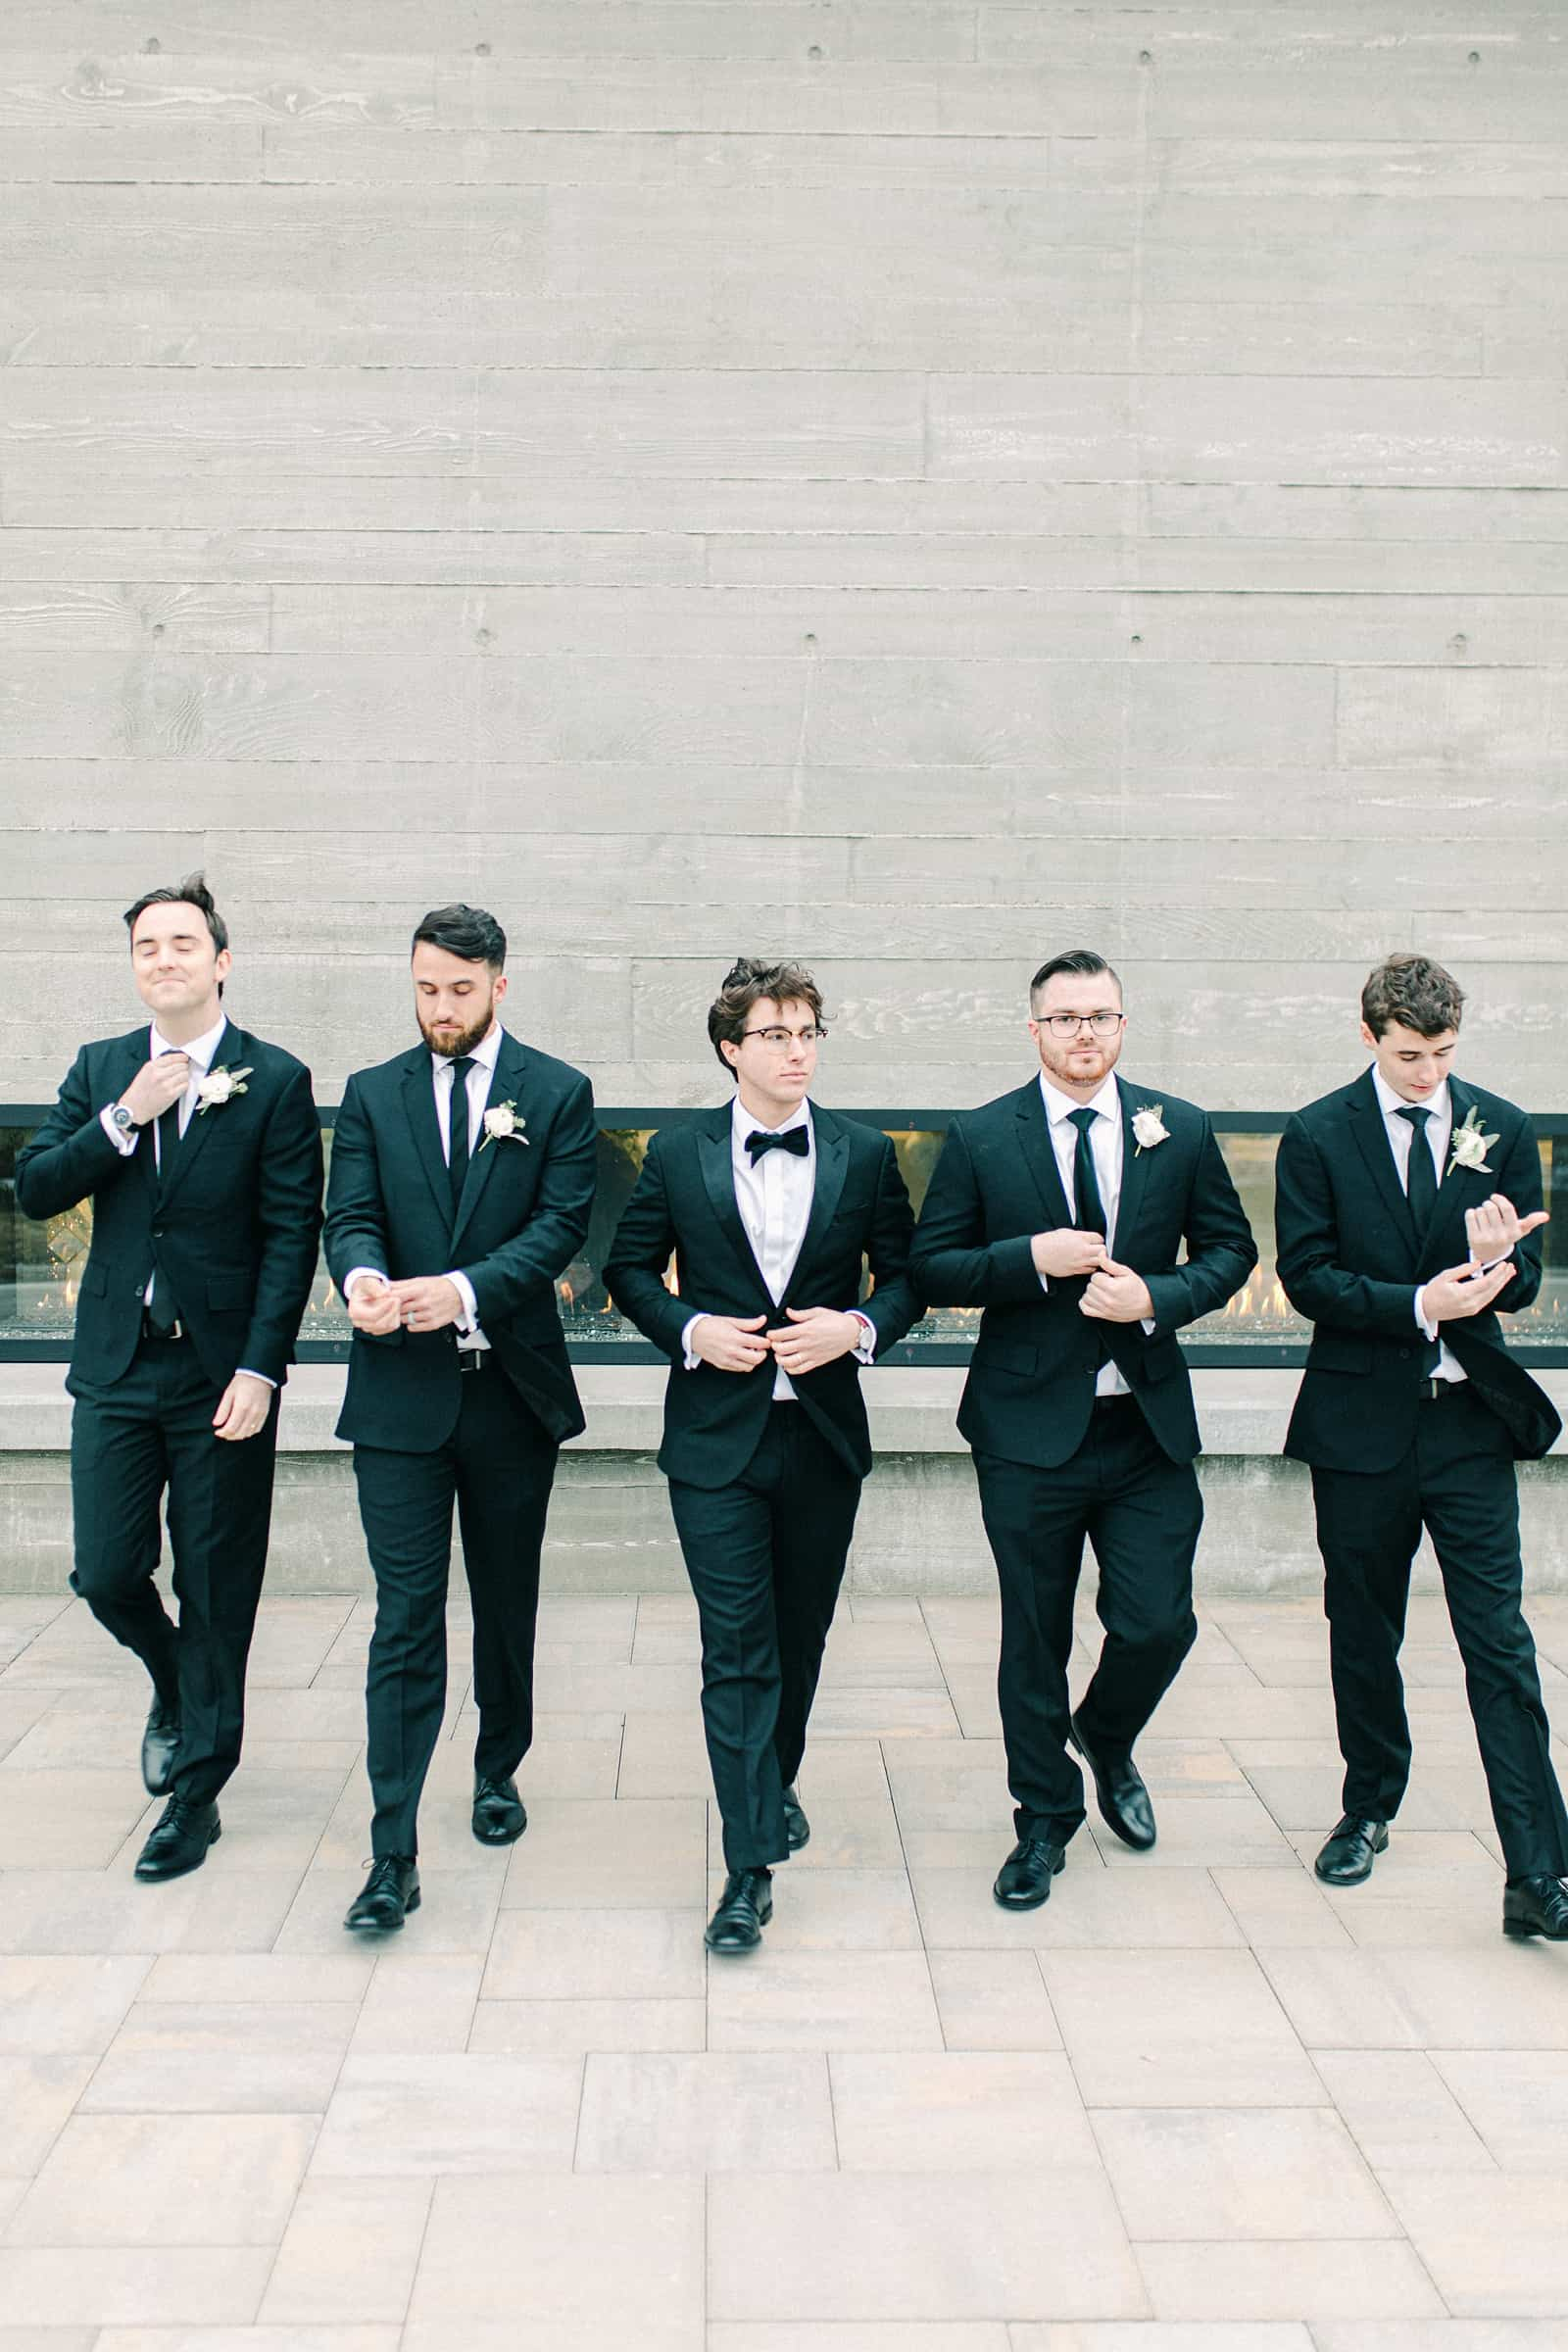 Groom and groomsmen in classic black tuxedos with bowties